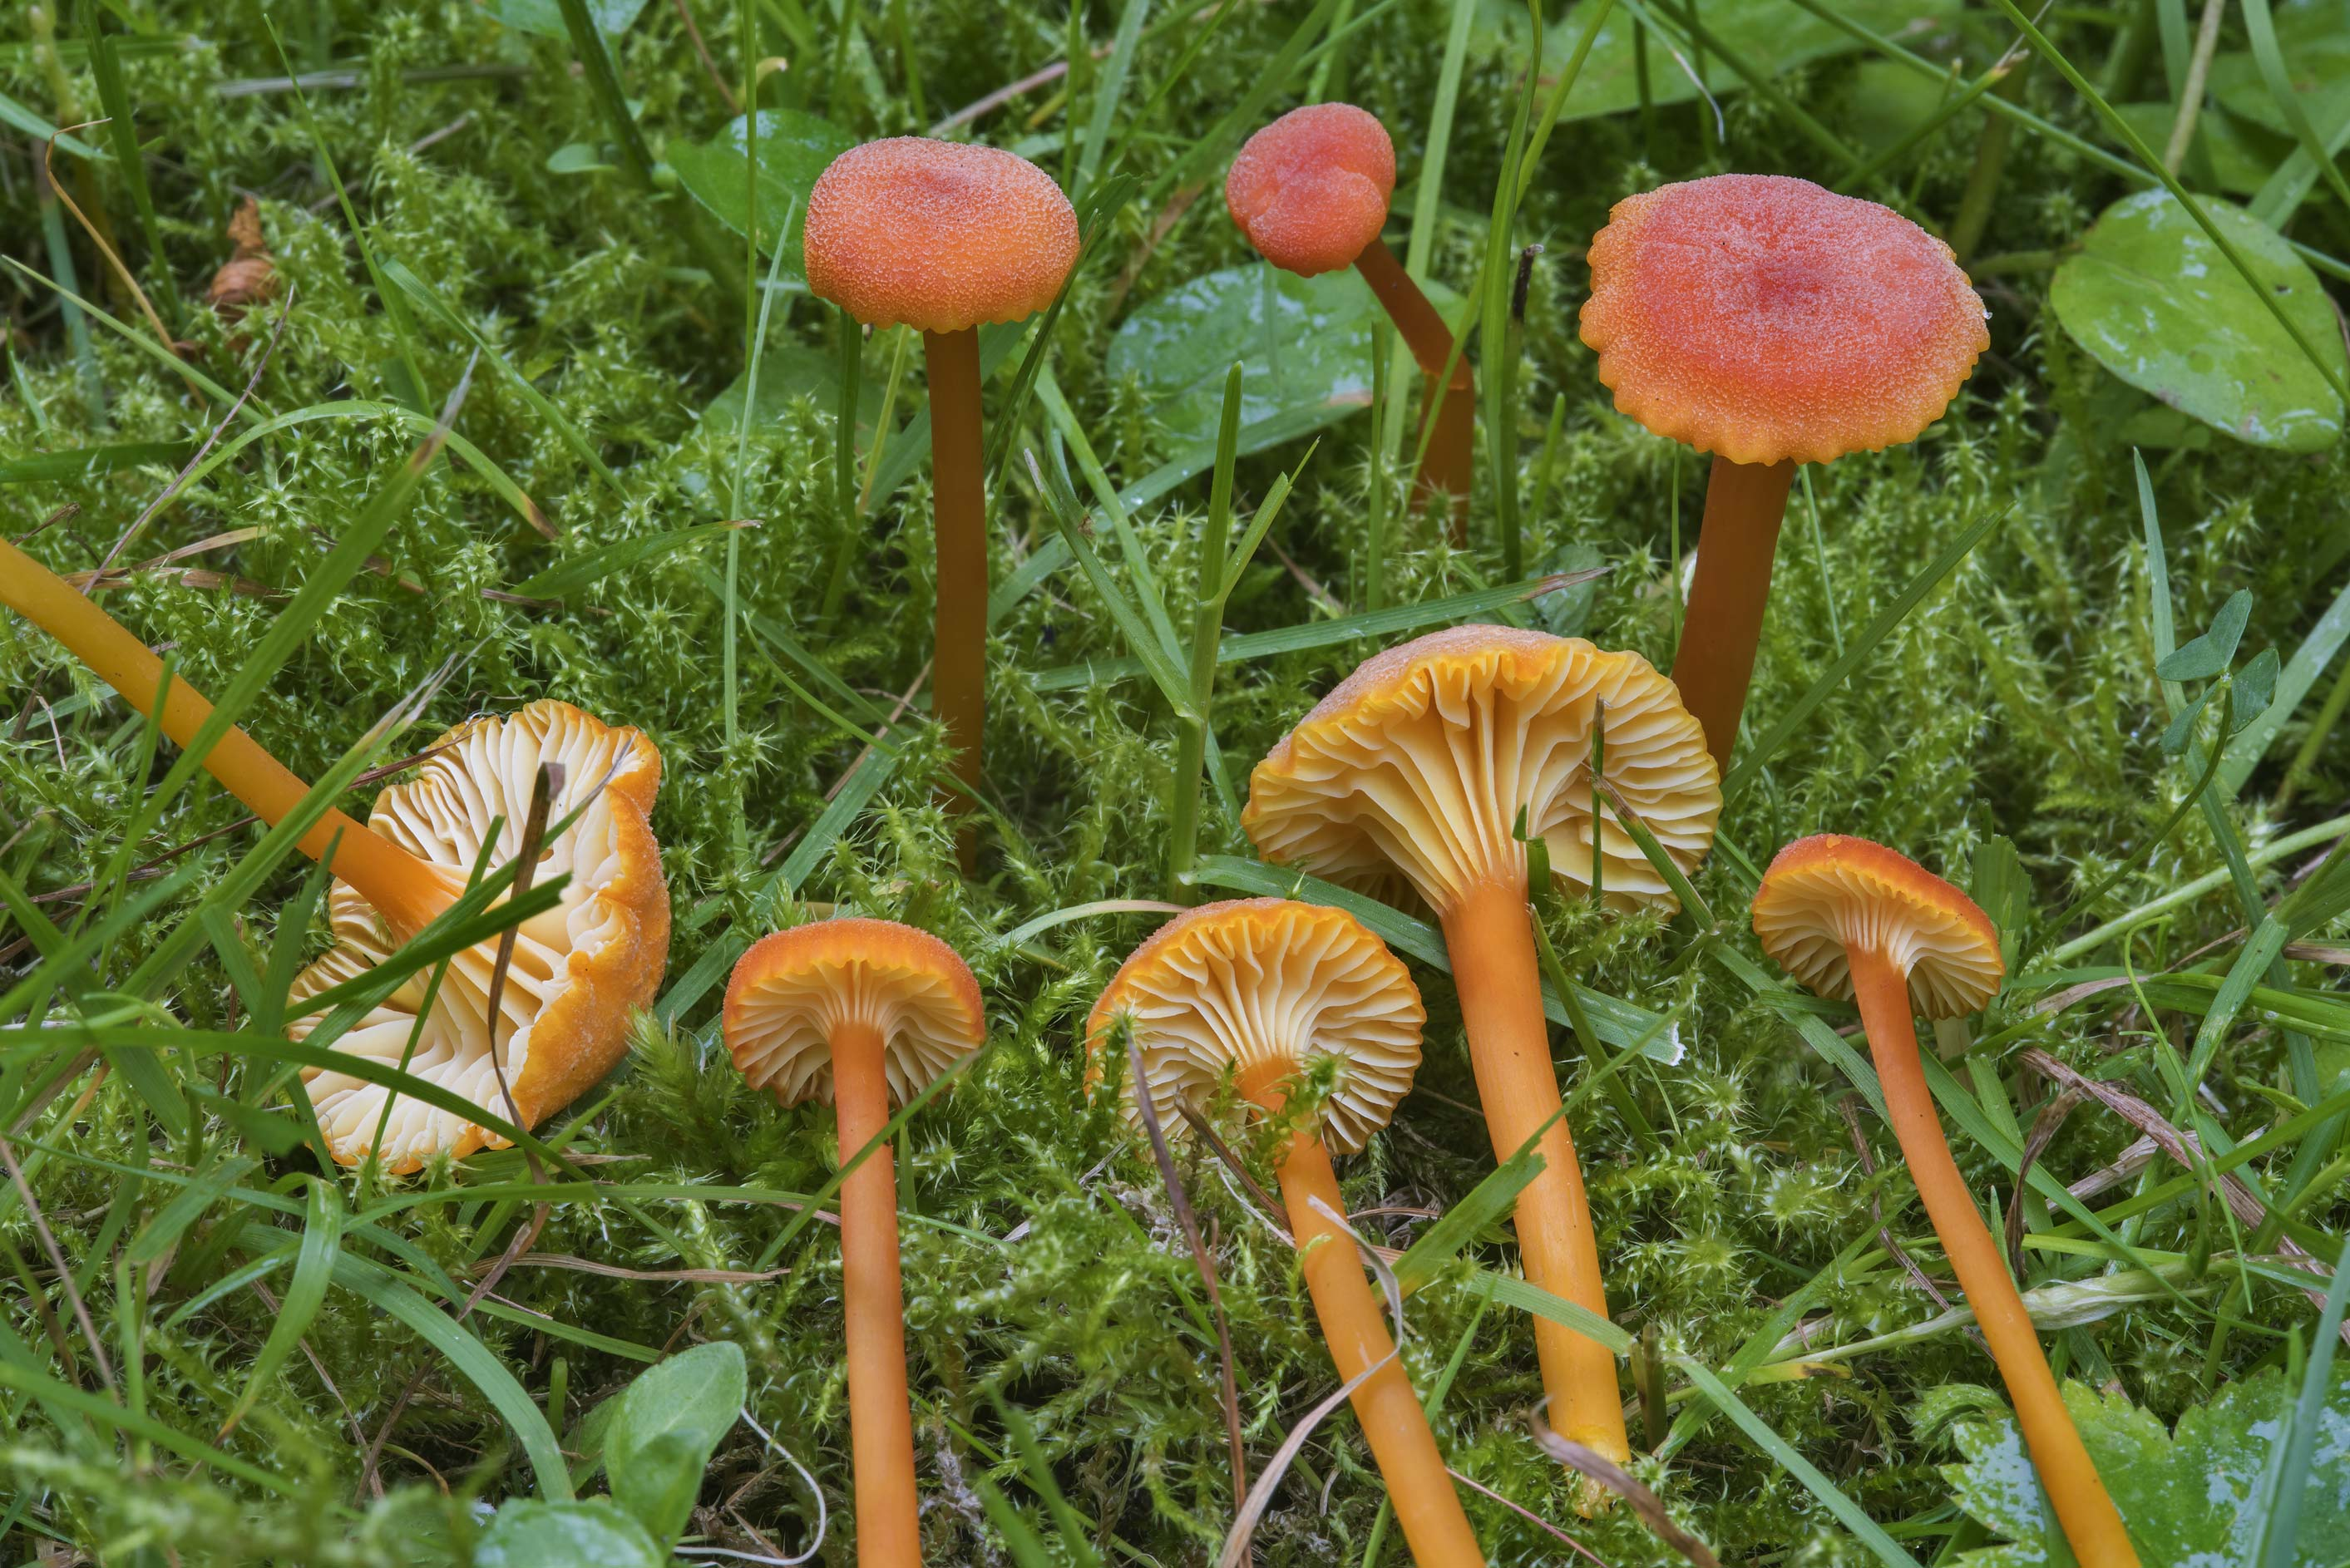 Goblet waxcap mushrooms (Hygrocybe cantharellus...Institute. St.Petersburg, Russia